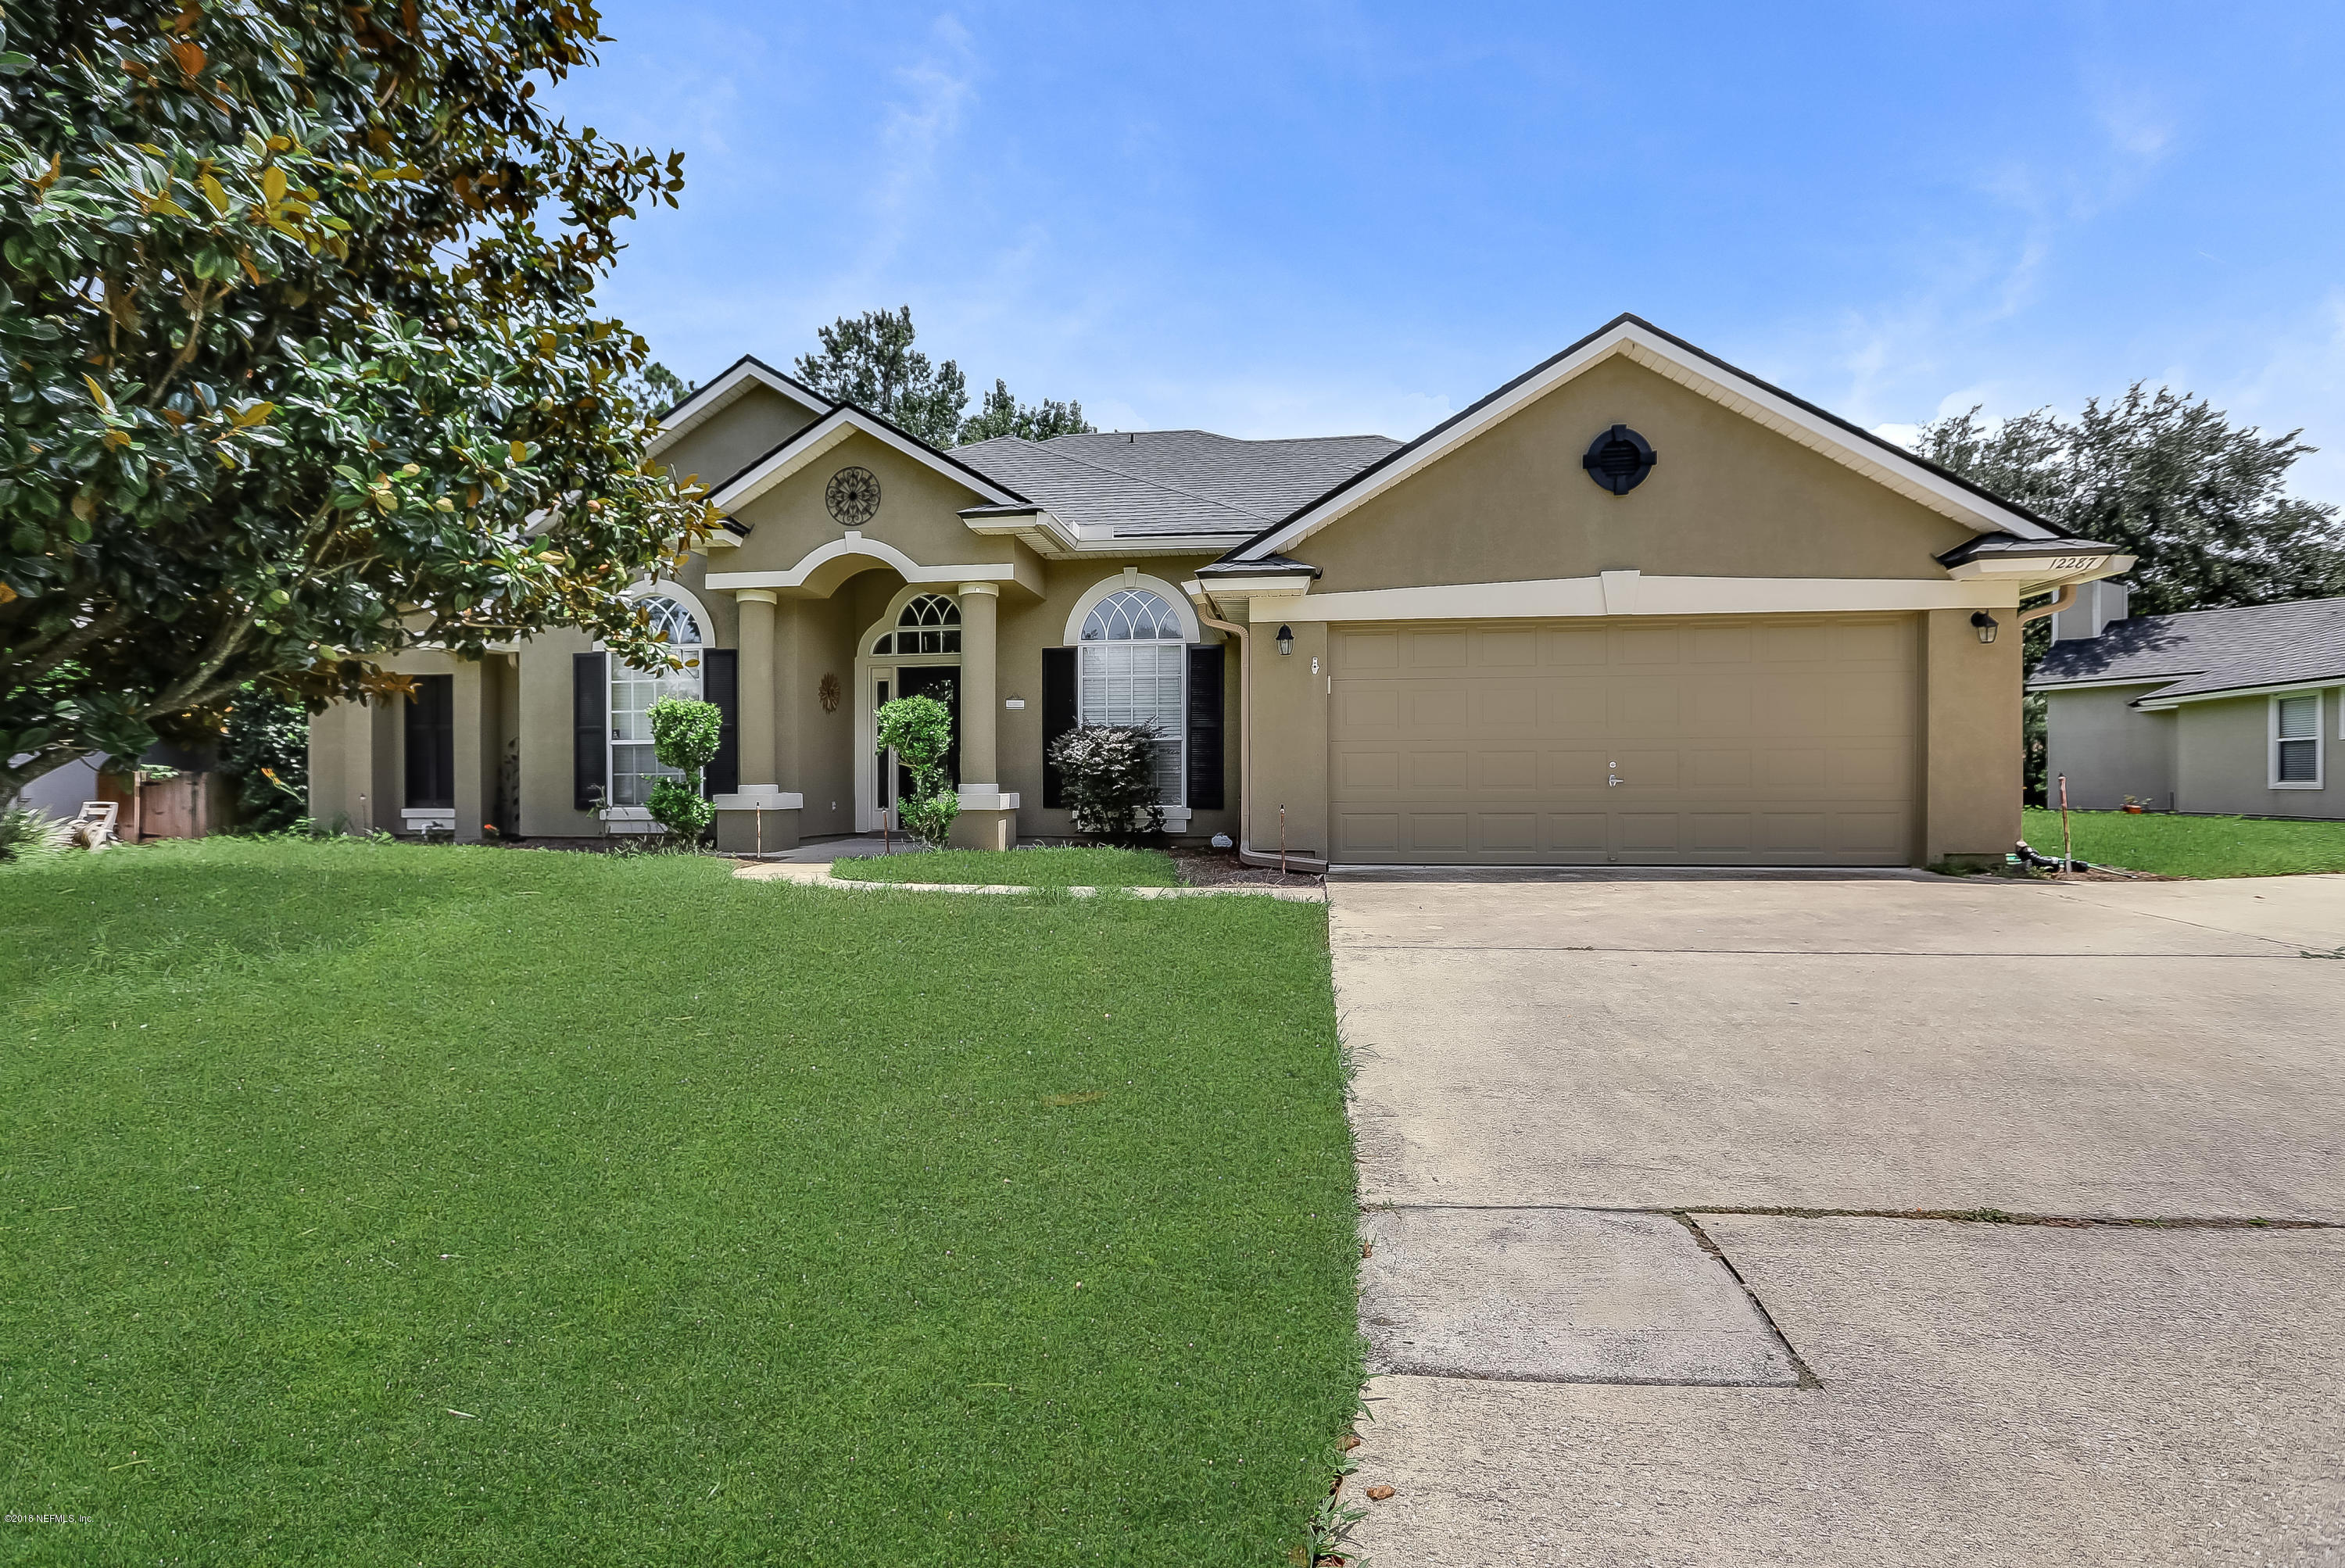 12287 LAKE FERN, JACKSONVILLE, FLORIDA 32258, 4 Bedrooms Bedrooms, ,4 BathroomsBathrooms,Residential - single family,For sale,LAKE FERN,952526